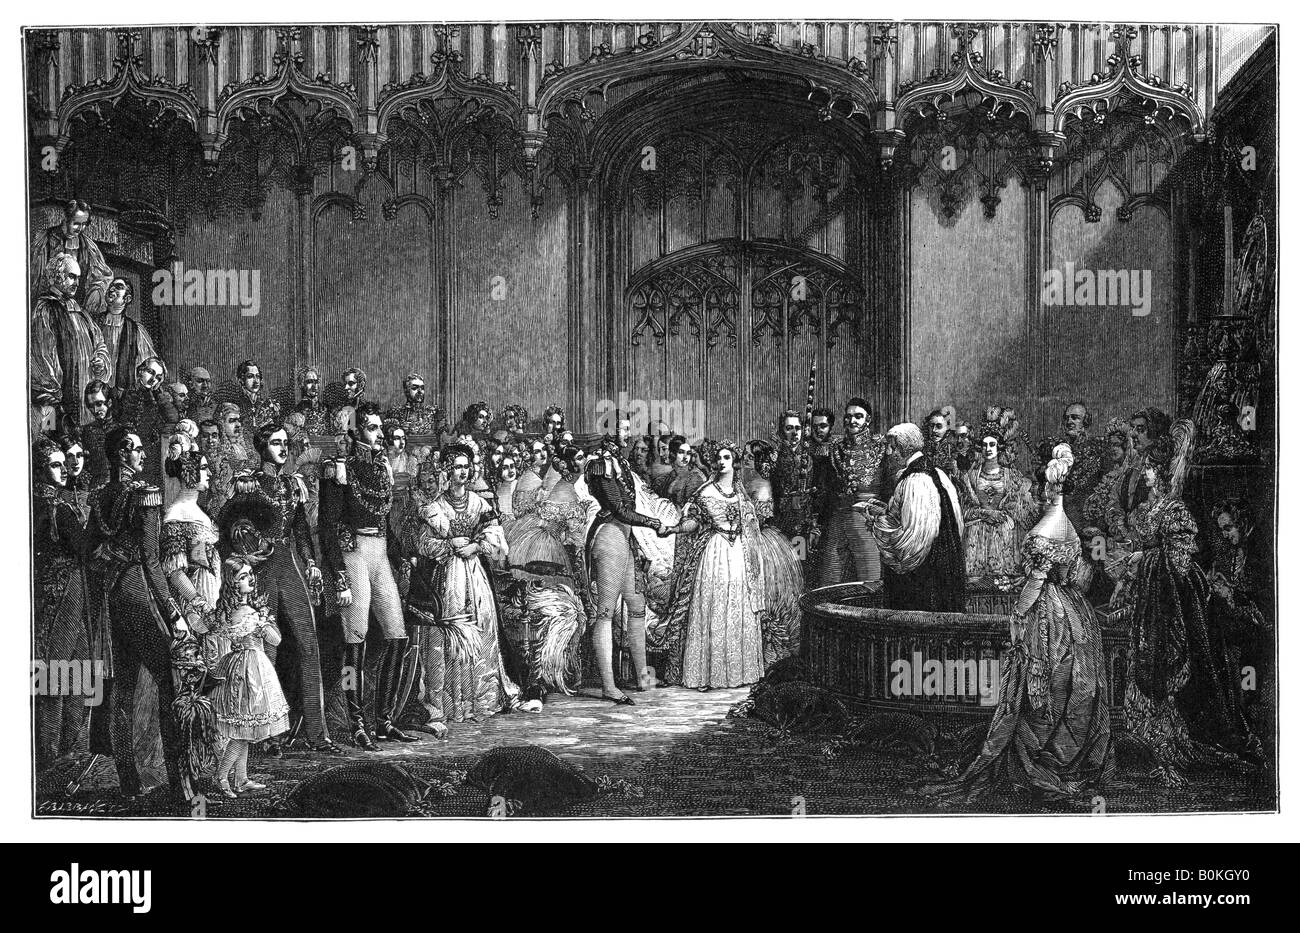 The Marriage of Queen Victoria and Prince Albert, 1840, (1900). Artist: Unknown - Stock Image